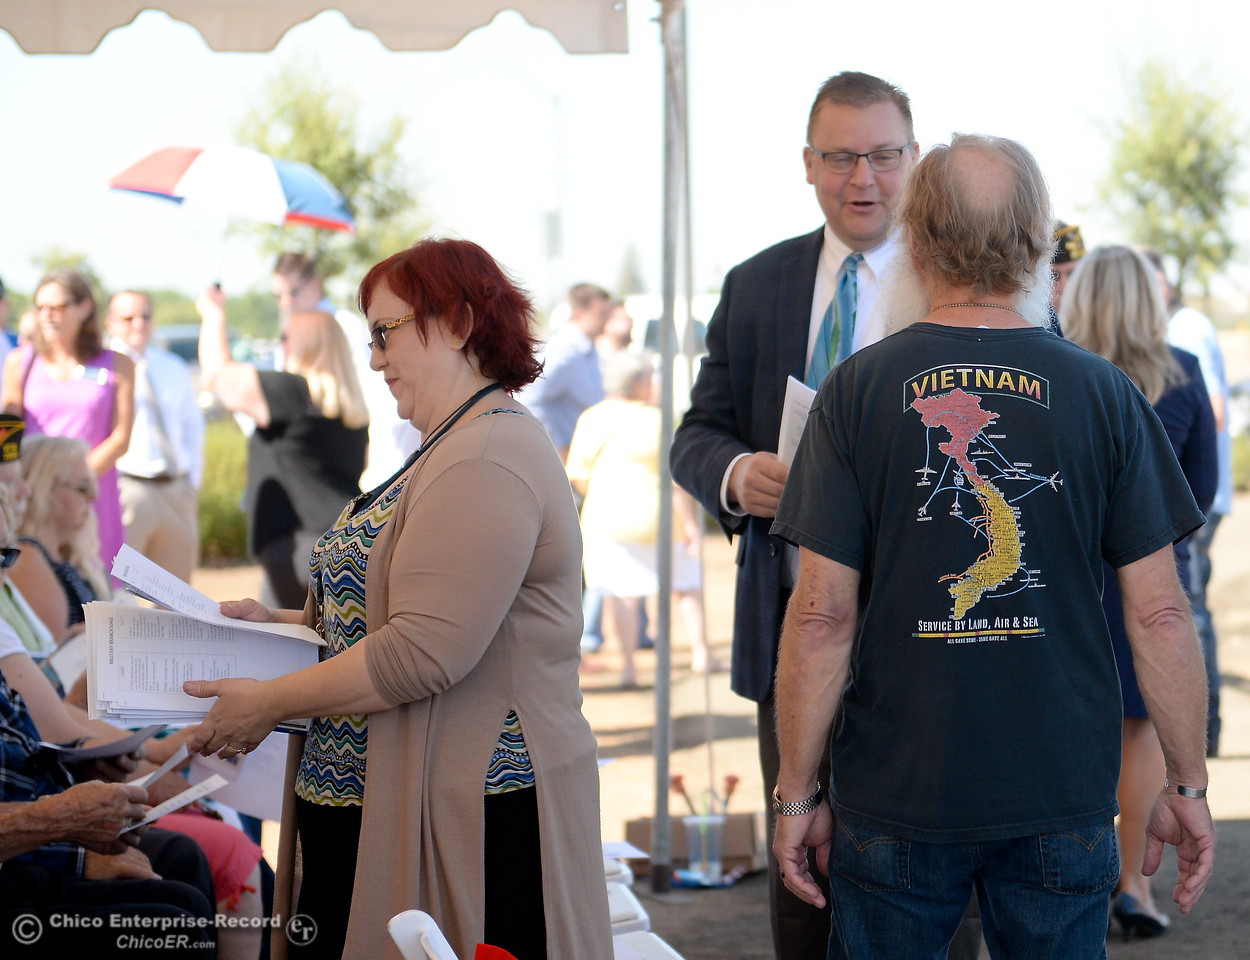 Many veterans are on hand to celebrate the groundbreaking ceremony for the Chico VA Outpatient Clinic at 2000 Concord Ave. in Chico, Calif. Thursday June 29, 2017.  (Bill Husa -- Enterprise-Record)